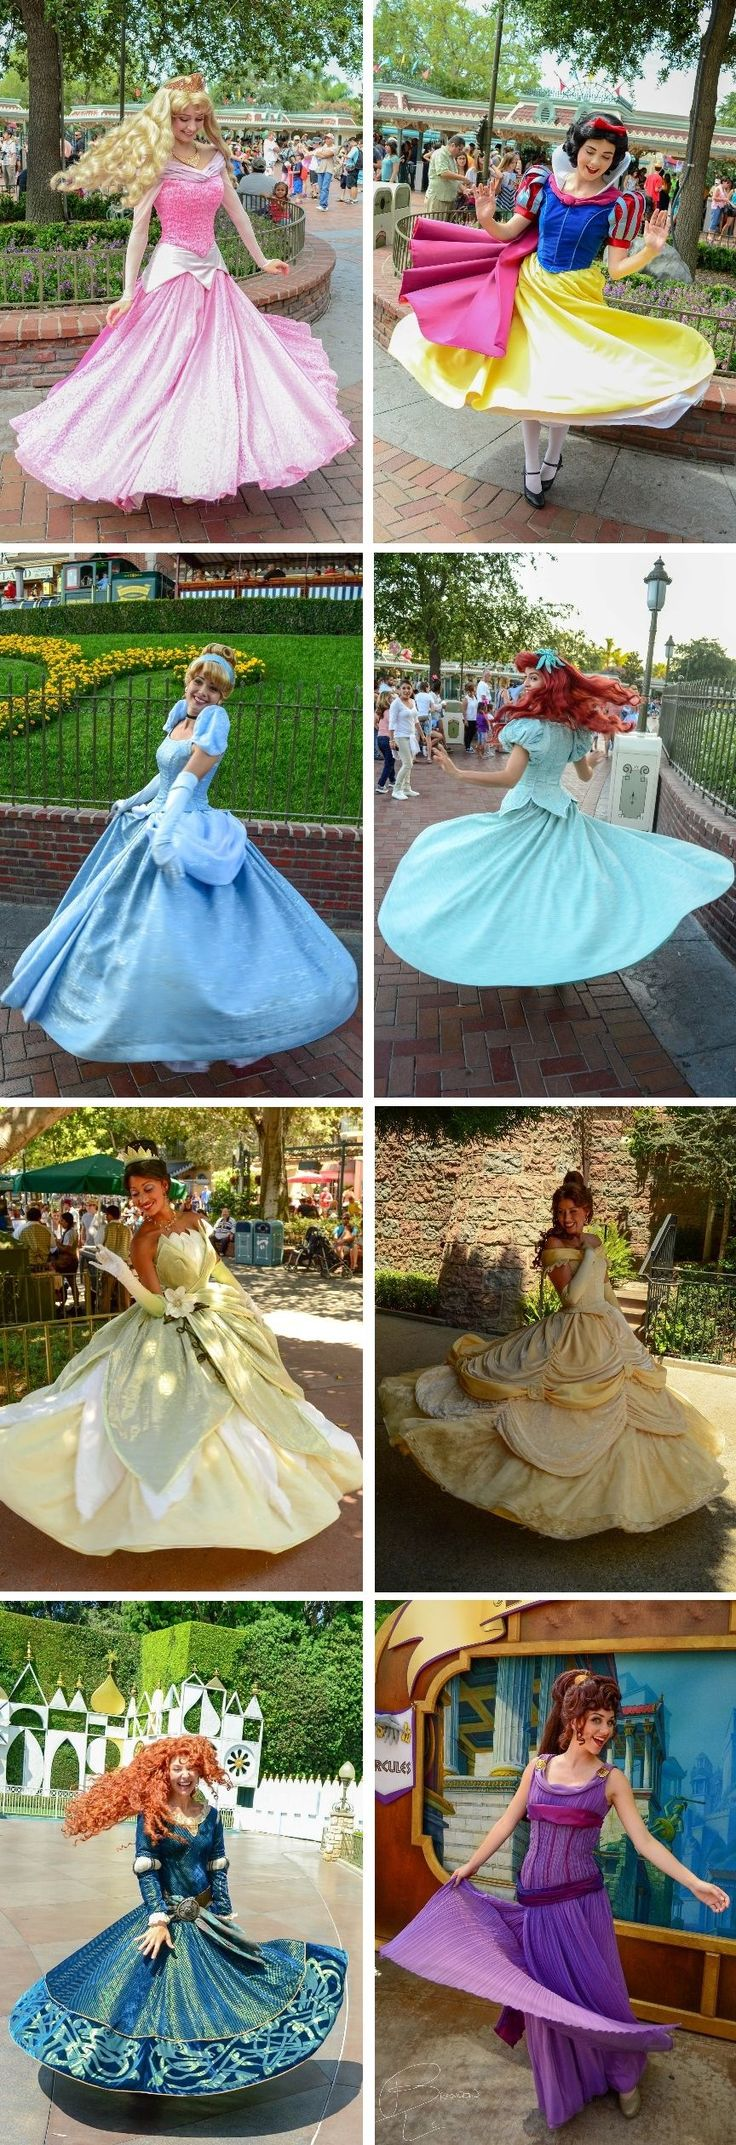 Disney Princesses - pssst do you like princesses? We will have a princess event the last weekend of March in Hamleys Denmark. Read more on our facebook/HamleysDanmark